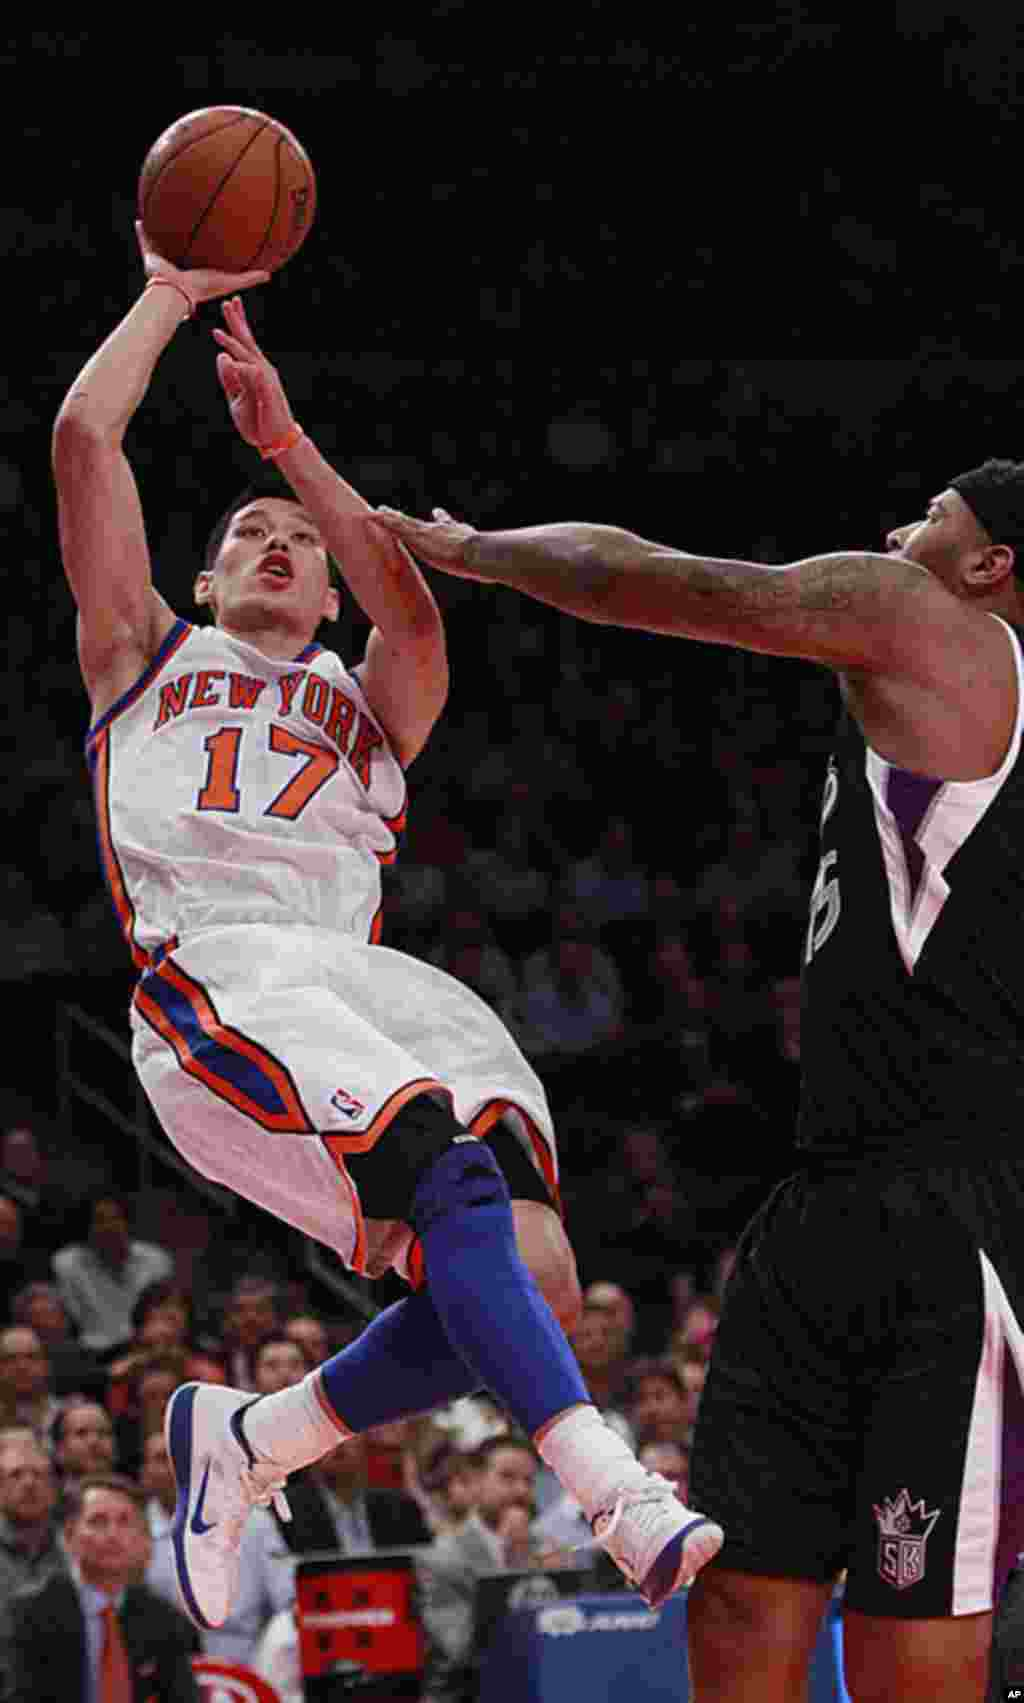 New York Knicks' Jeremy Lin shoots over Sacramento Kings' DeMarcus Cousins during an NBA basketball game, February 15, 2012, in New York. (AP)